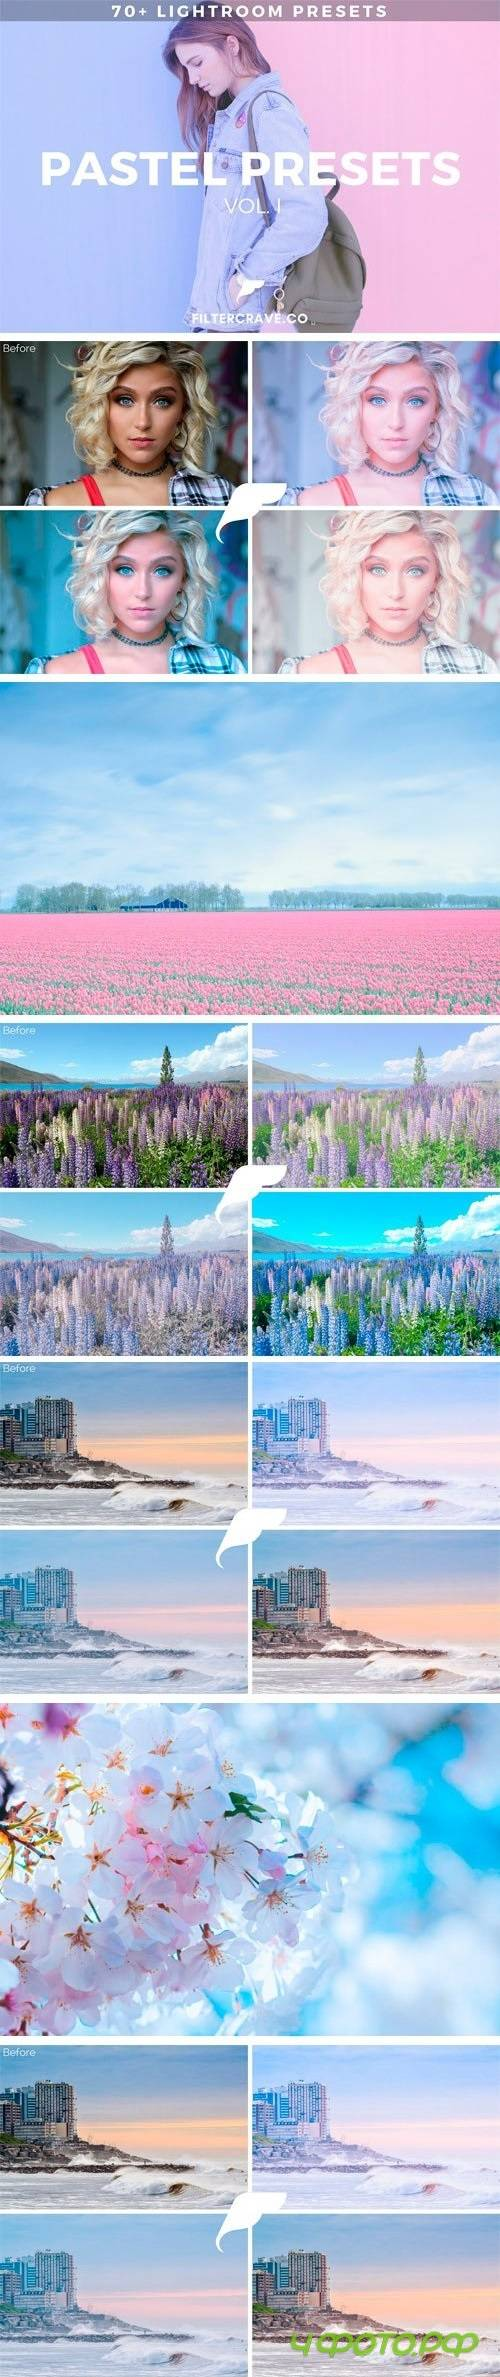 70+ Pastel Lightroom Presets Vol. I 1803748